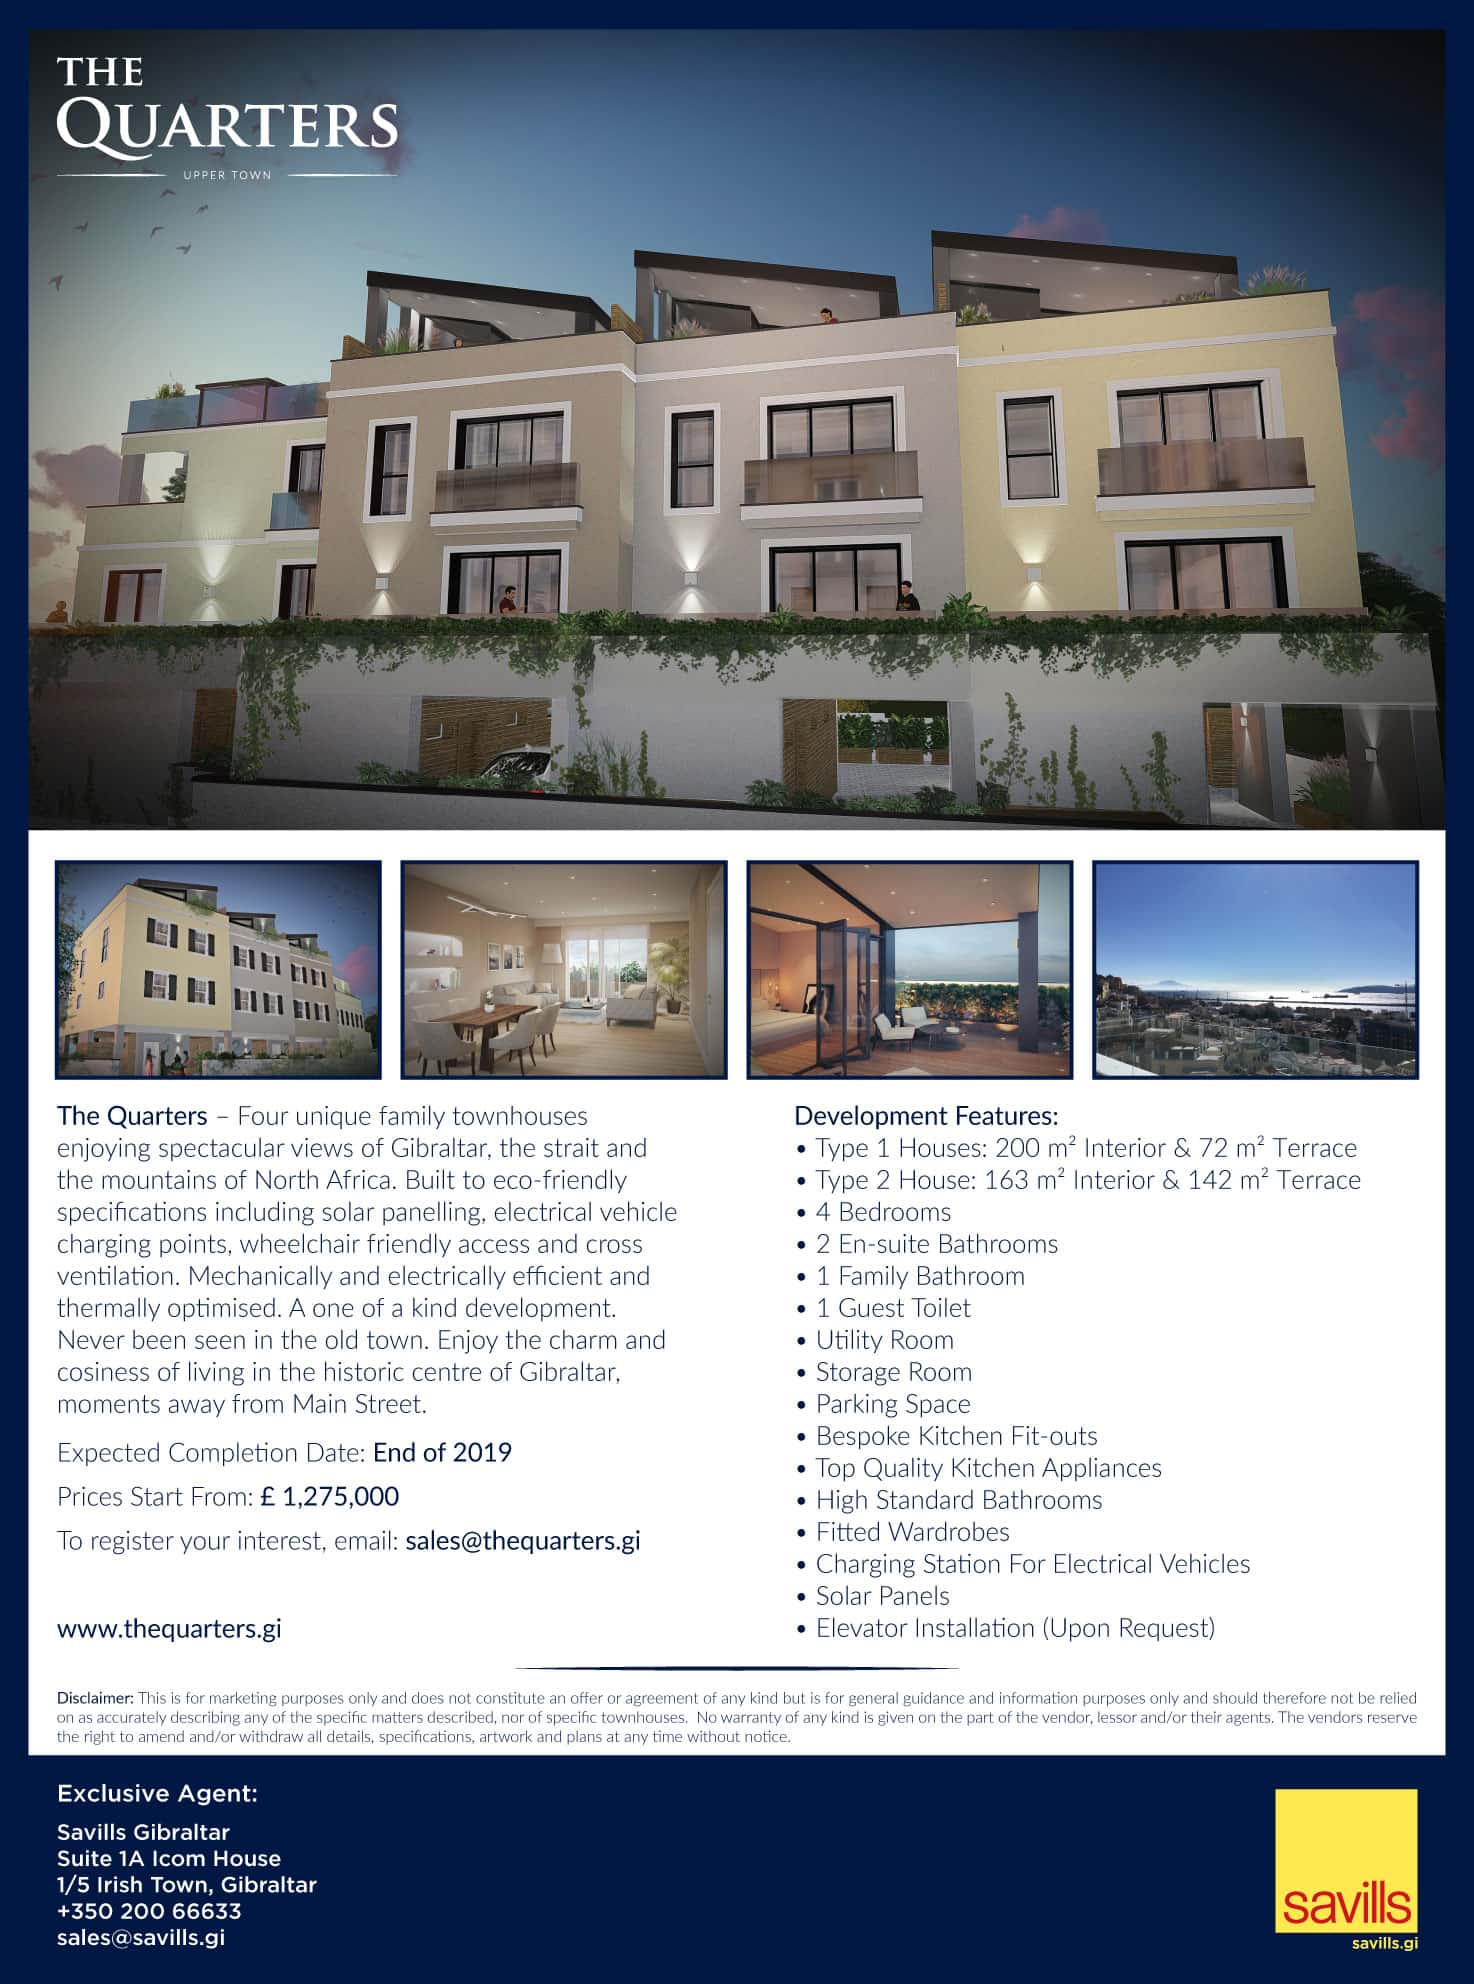 The Quarters full page advert in The Chronicle newspaper, Gibraltar